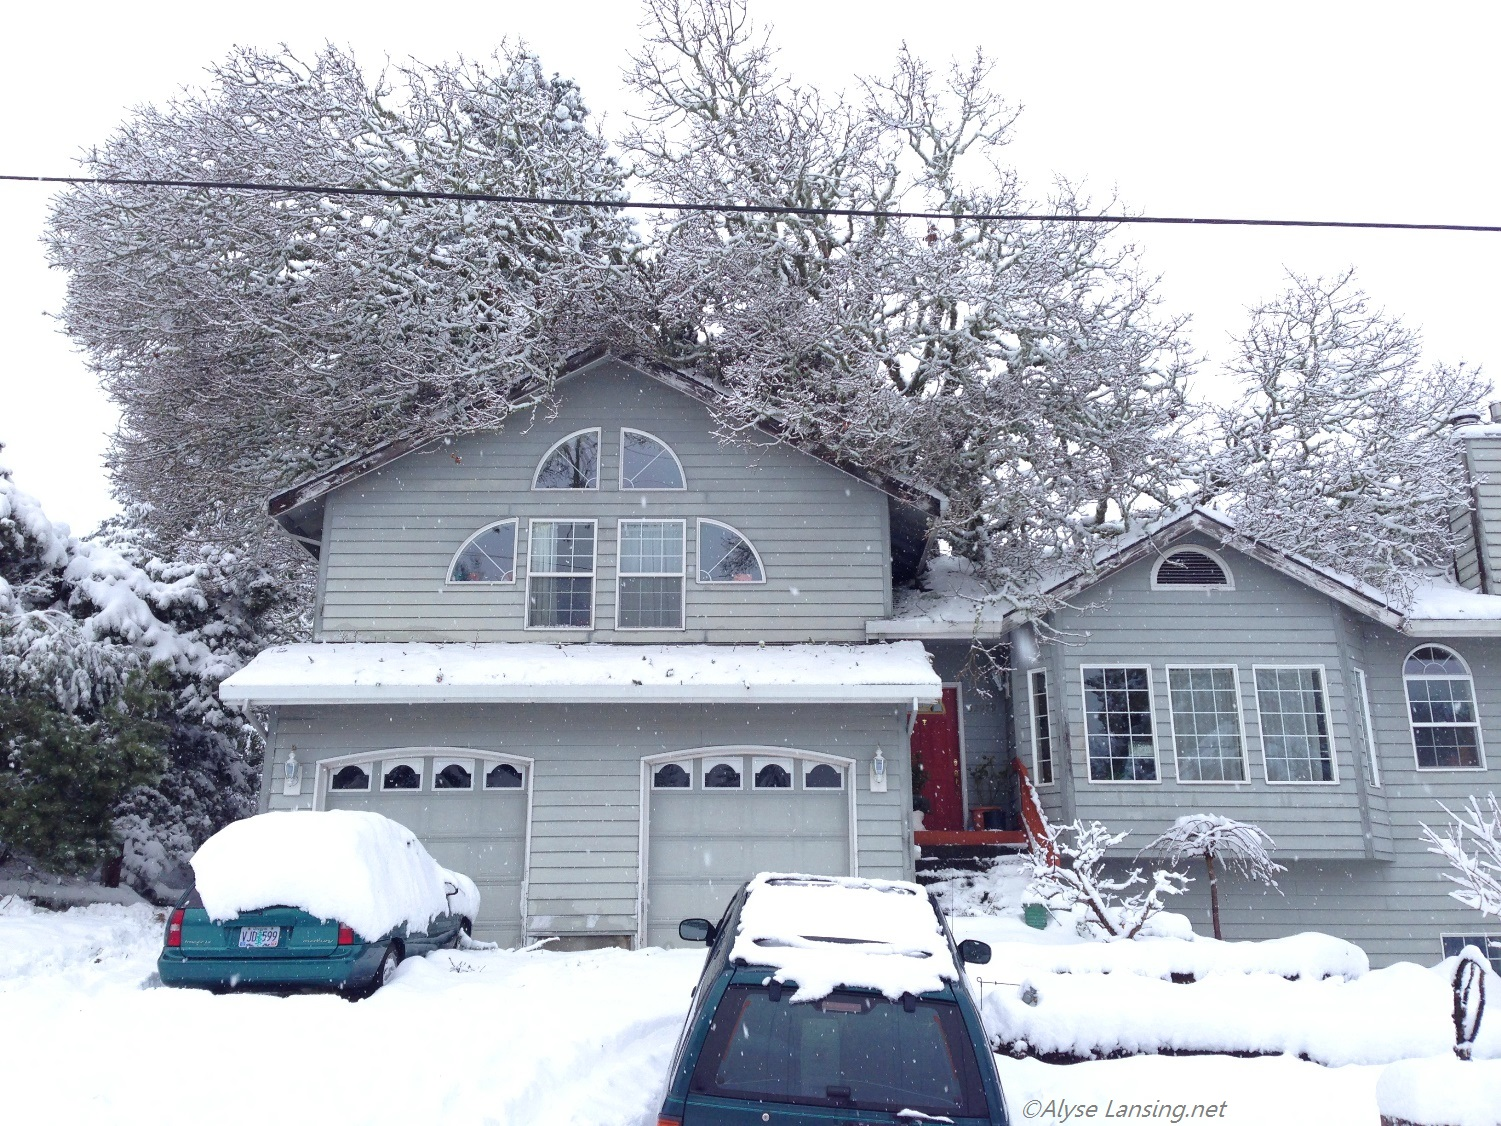 January 11, 2017.  Front view, tree looking like it is trying to eat the house.